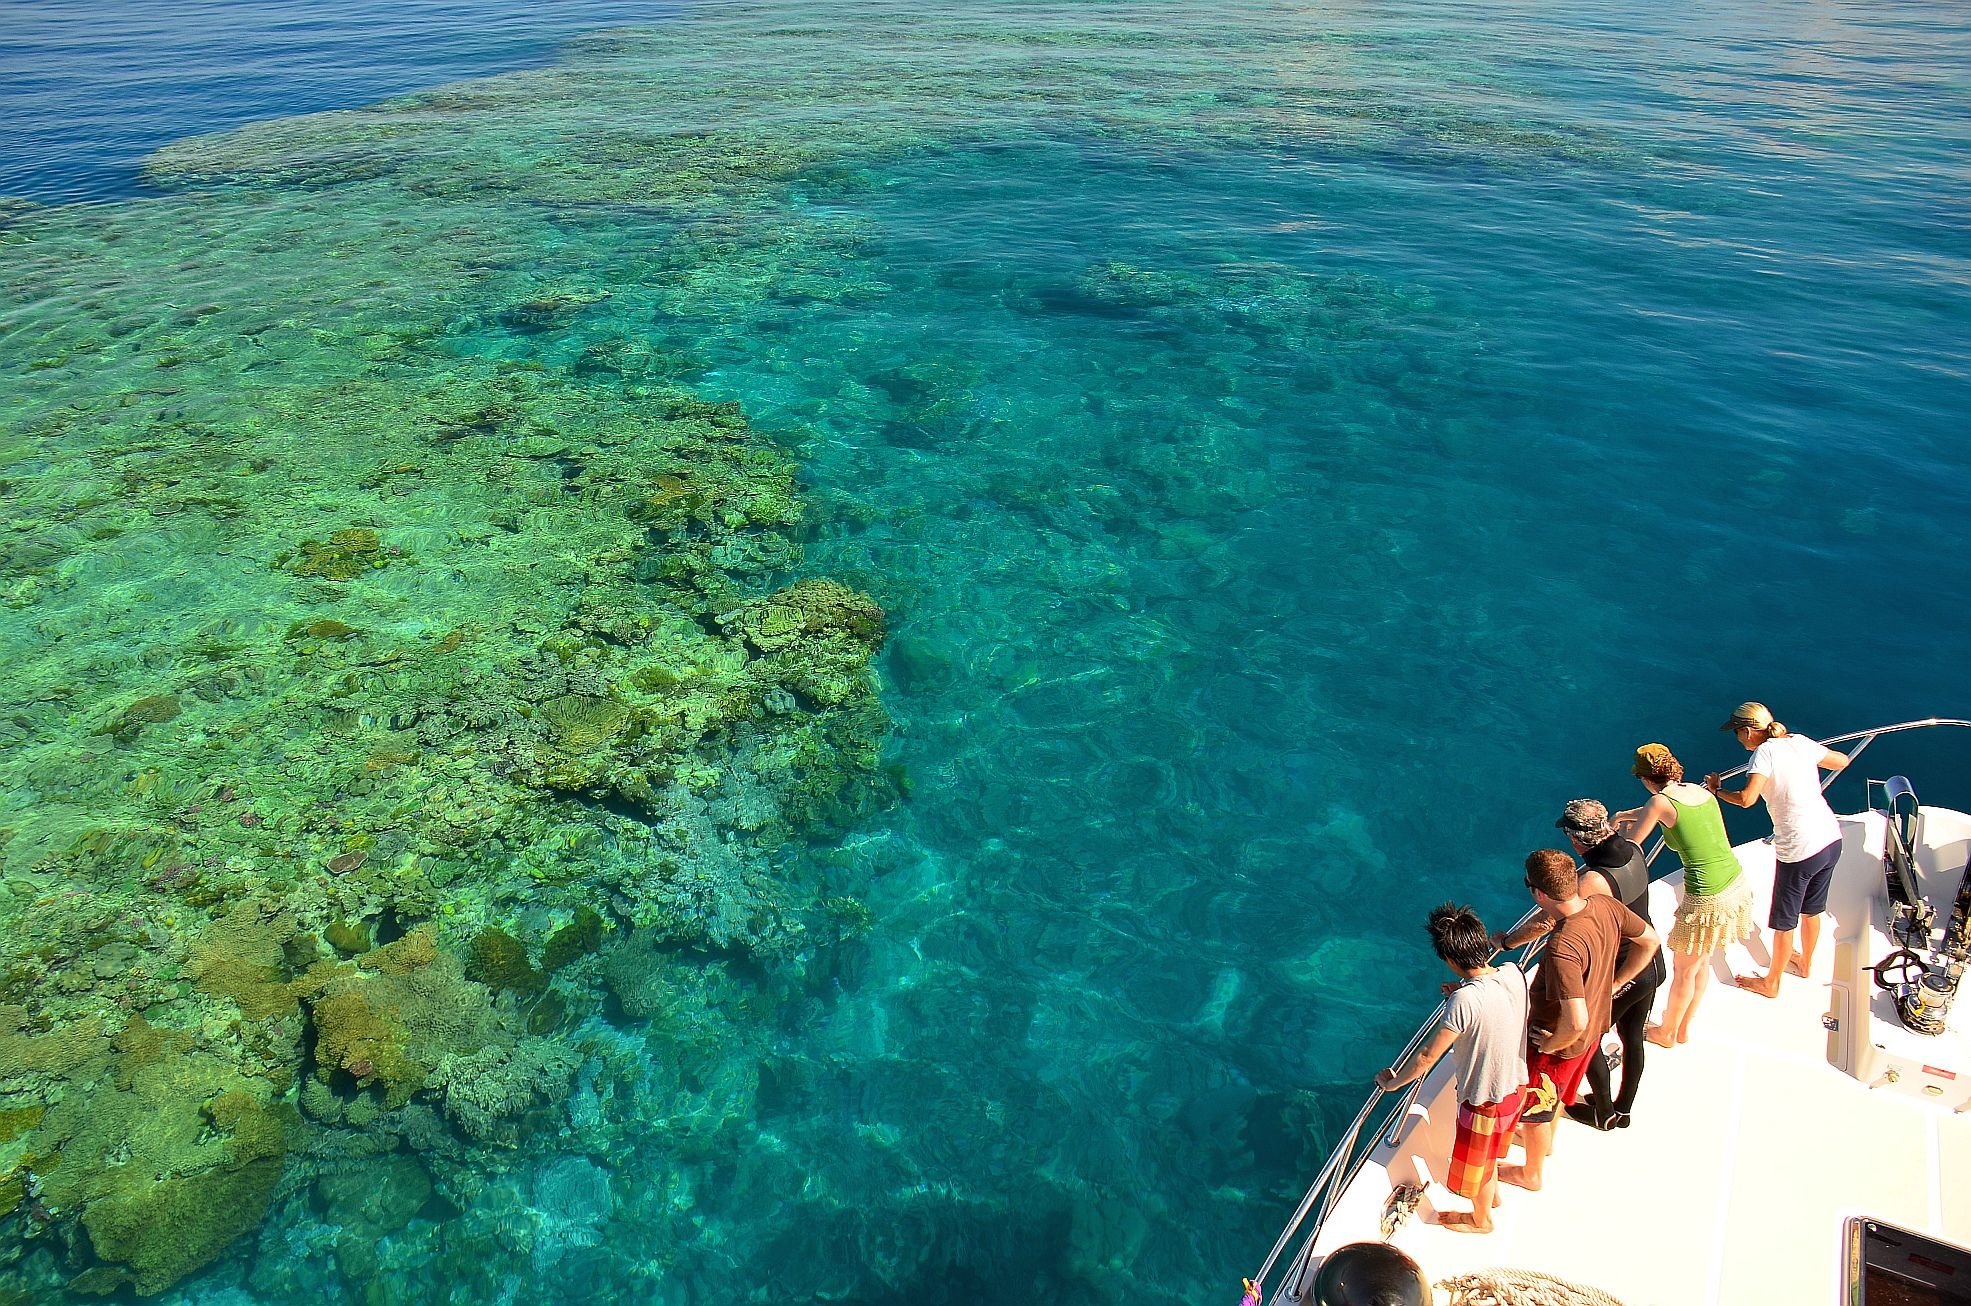 People looking at the Great Barrier Reef from a boat.